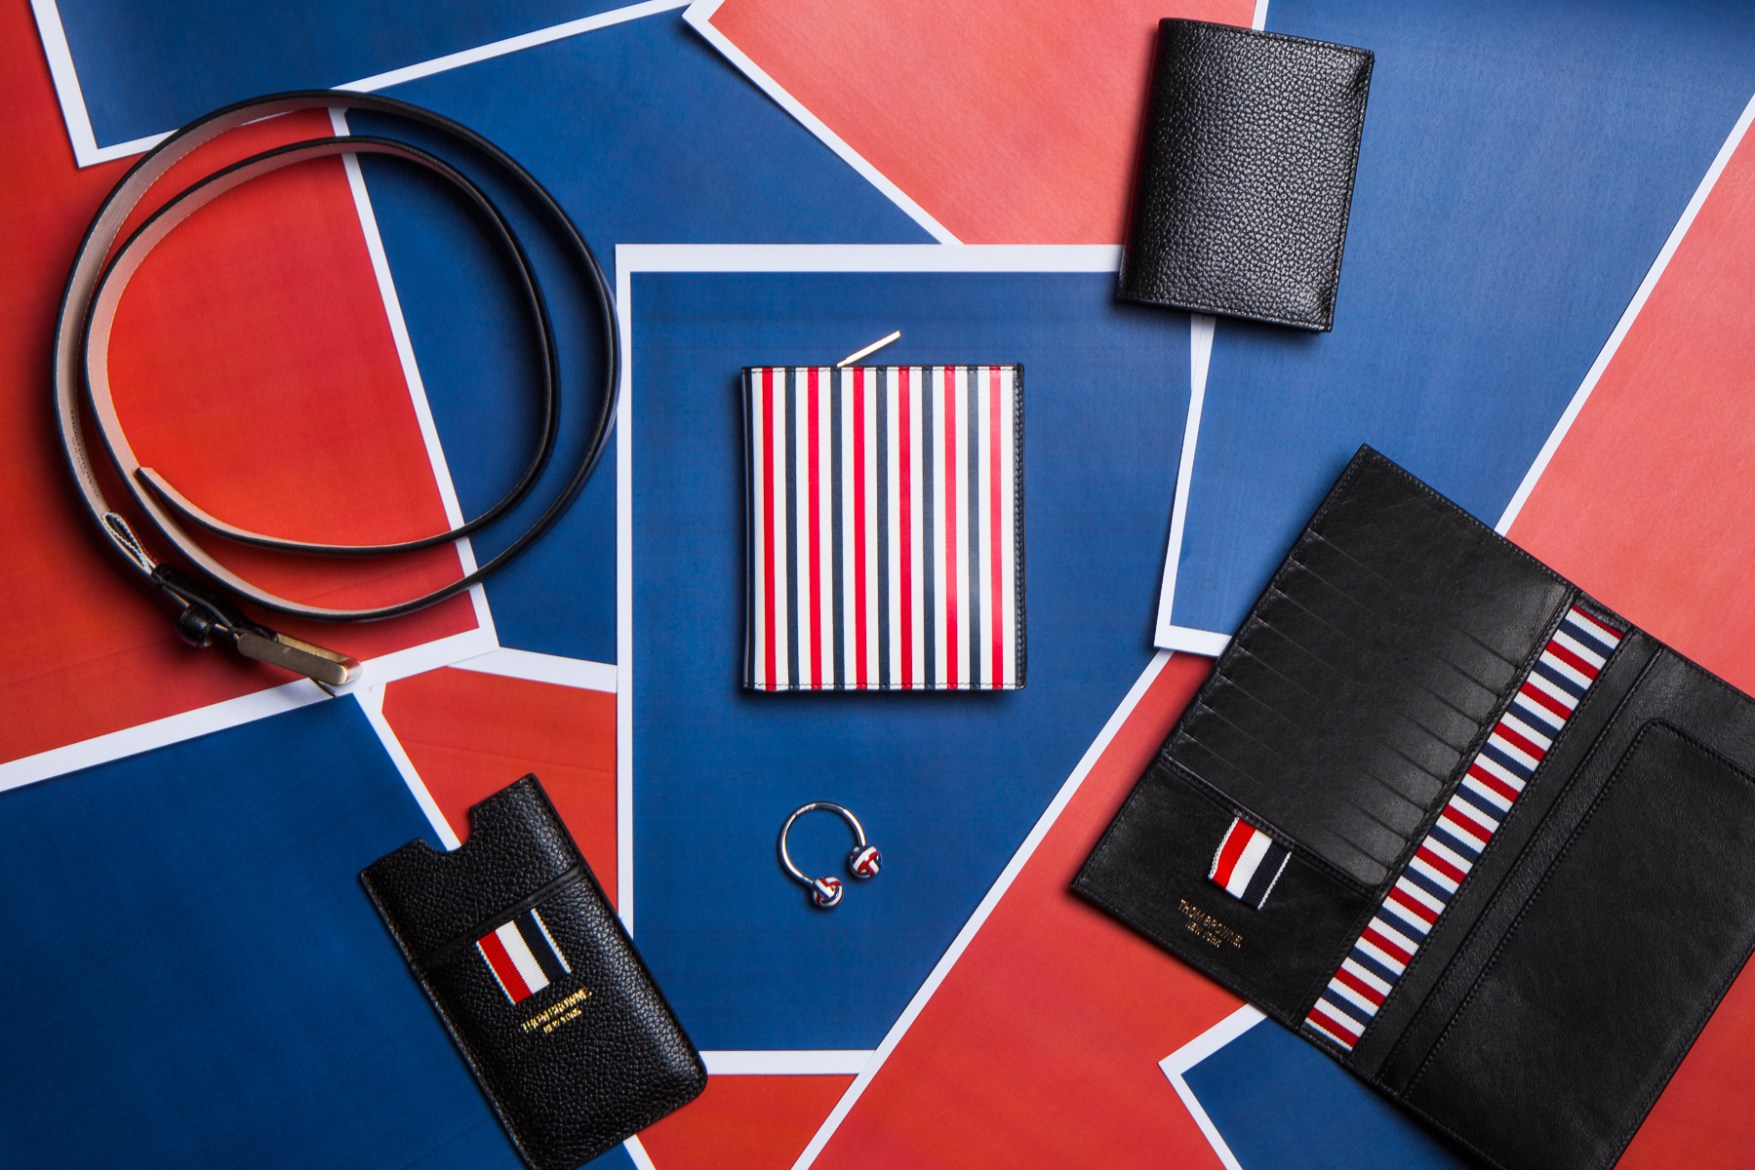 Thom Browne 2014 Spring/Summer Accessories